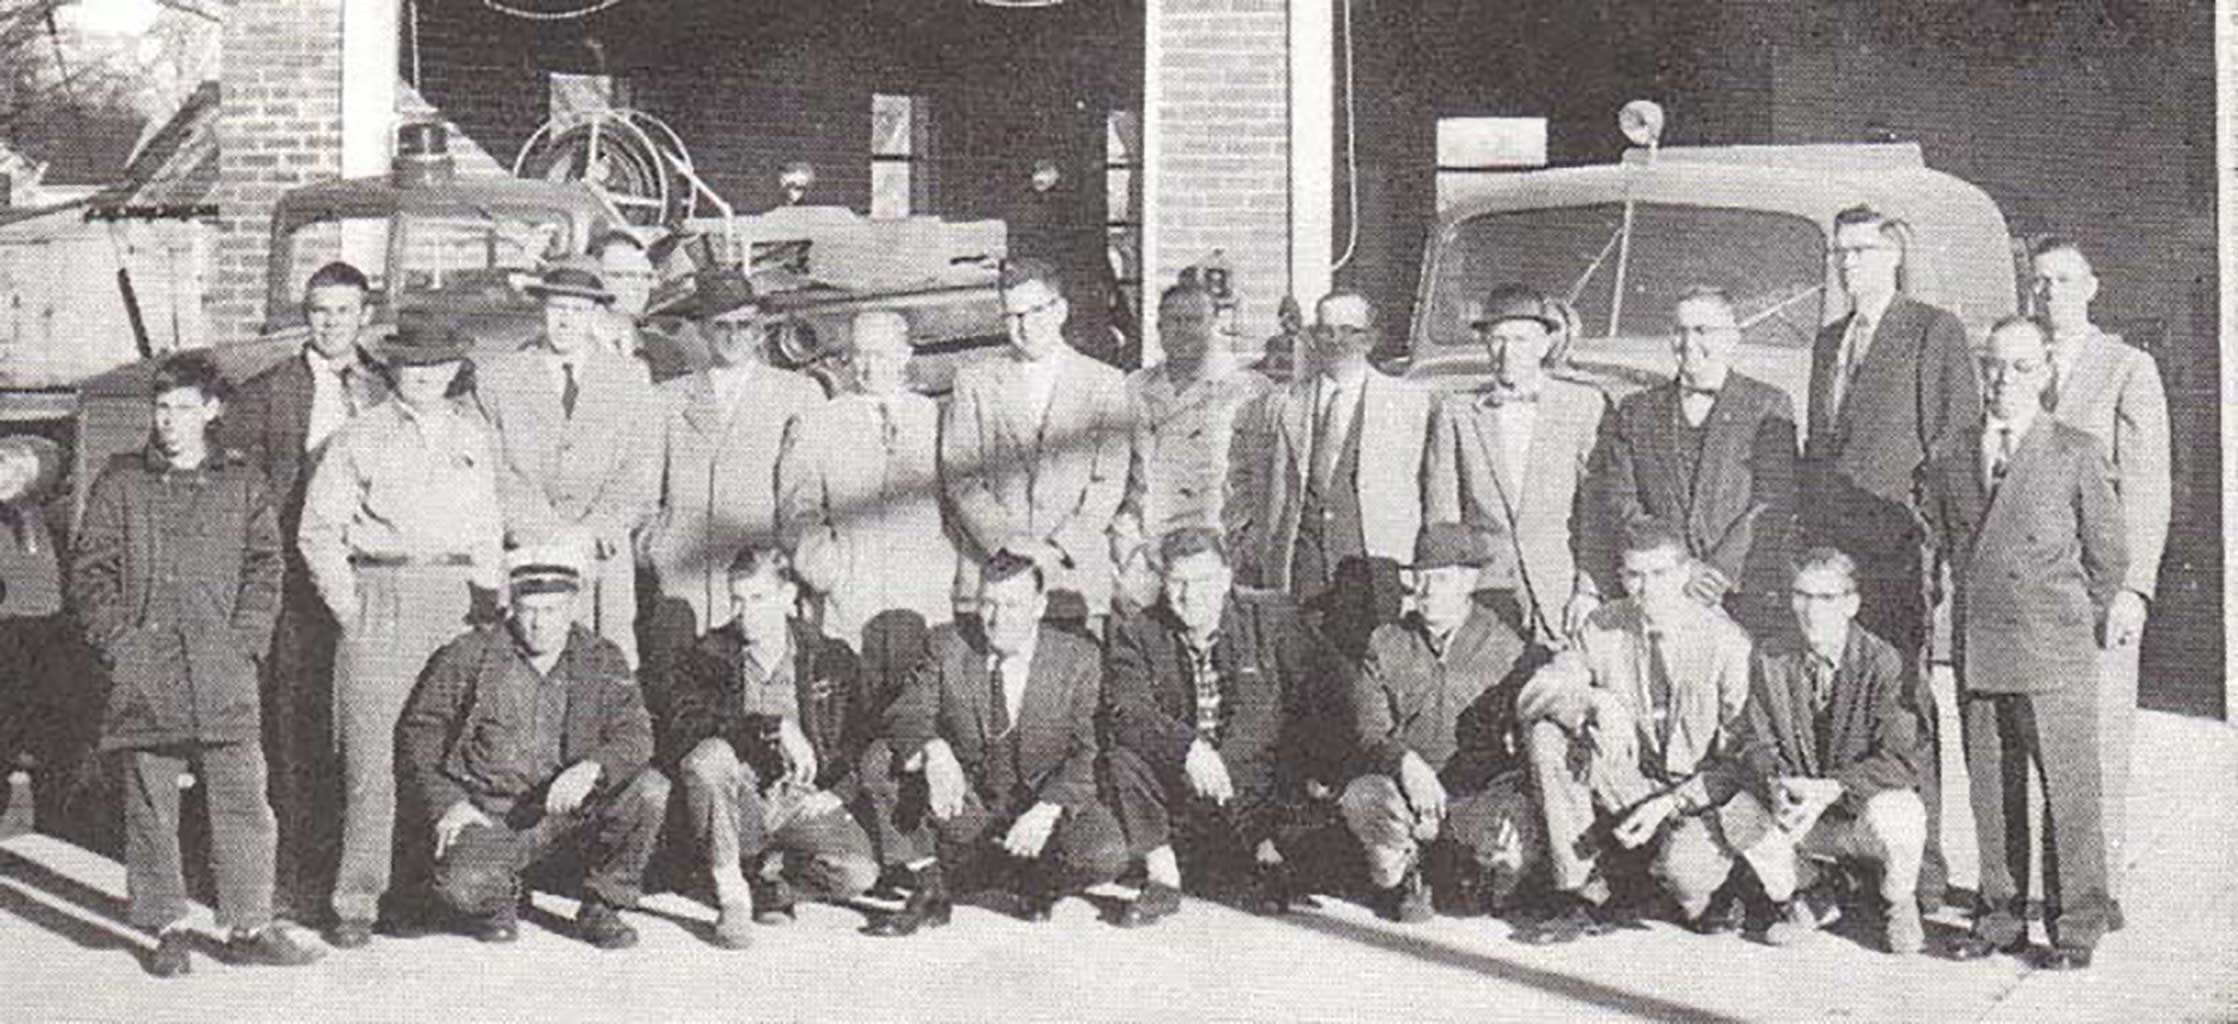 cvfd-members-in-front-of-new-fire-station-1955